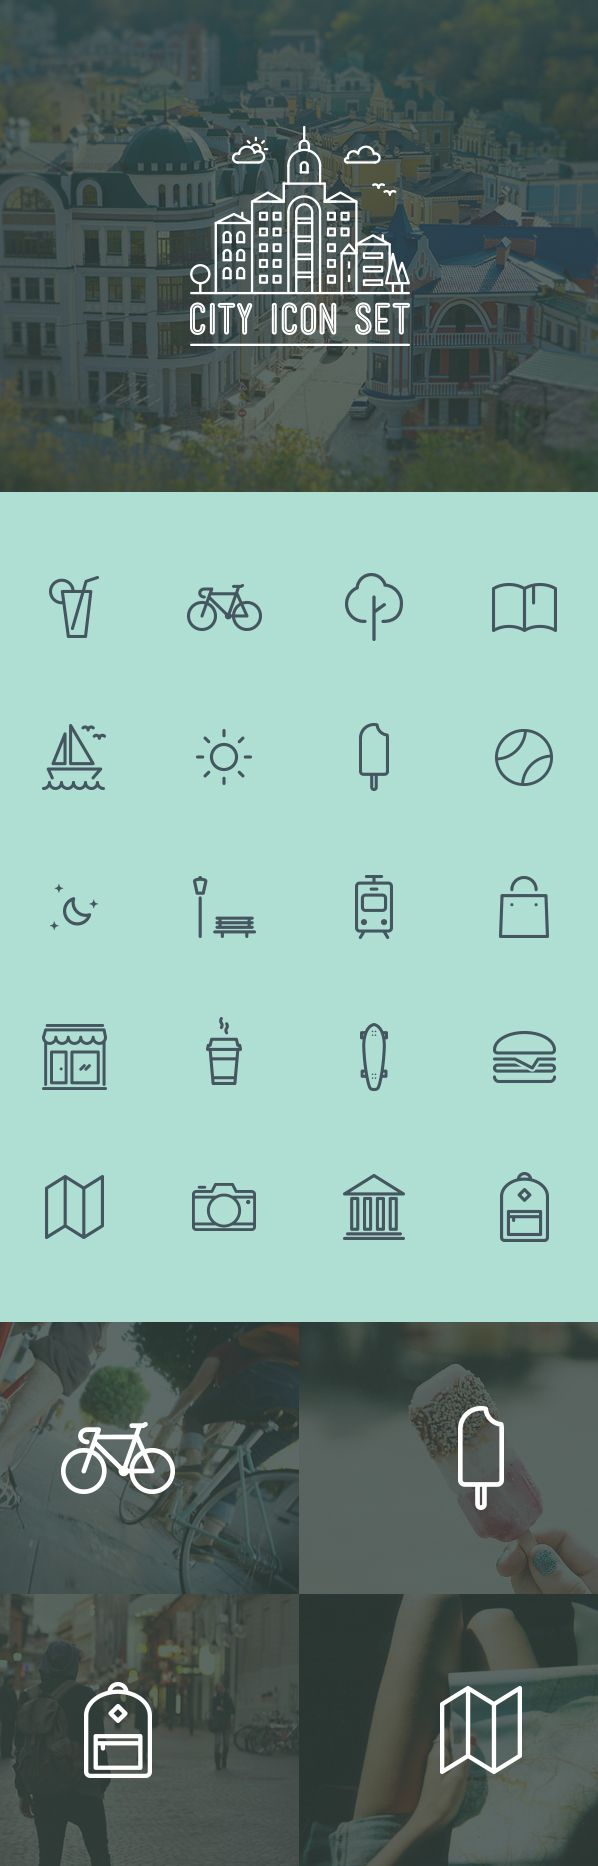 City icon set by Eugene Maksymchuk icon